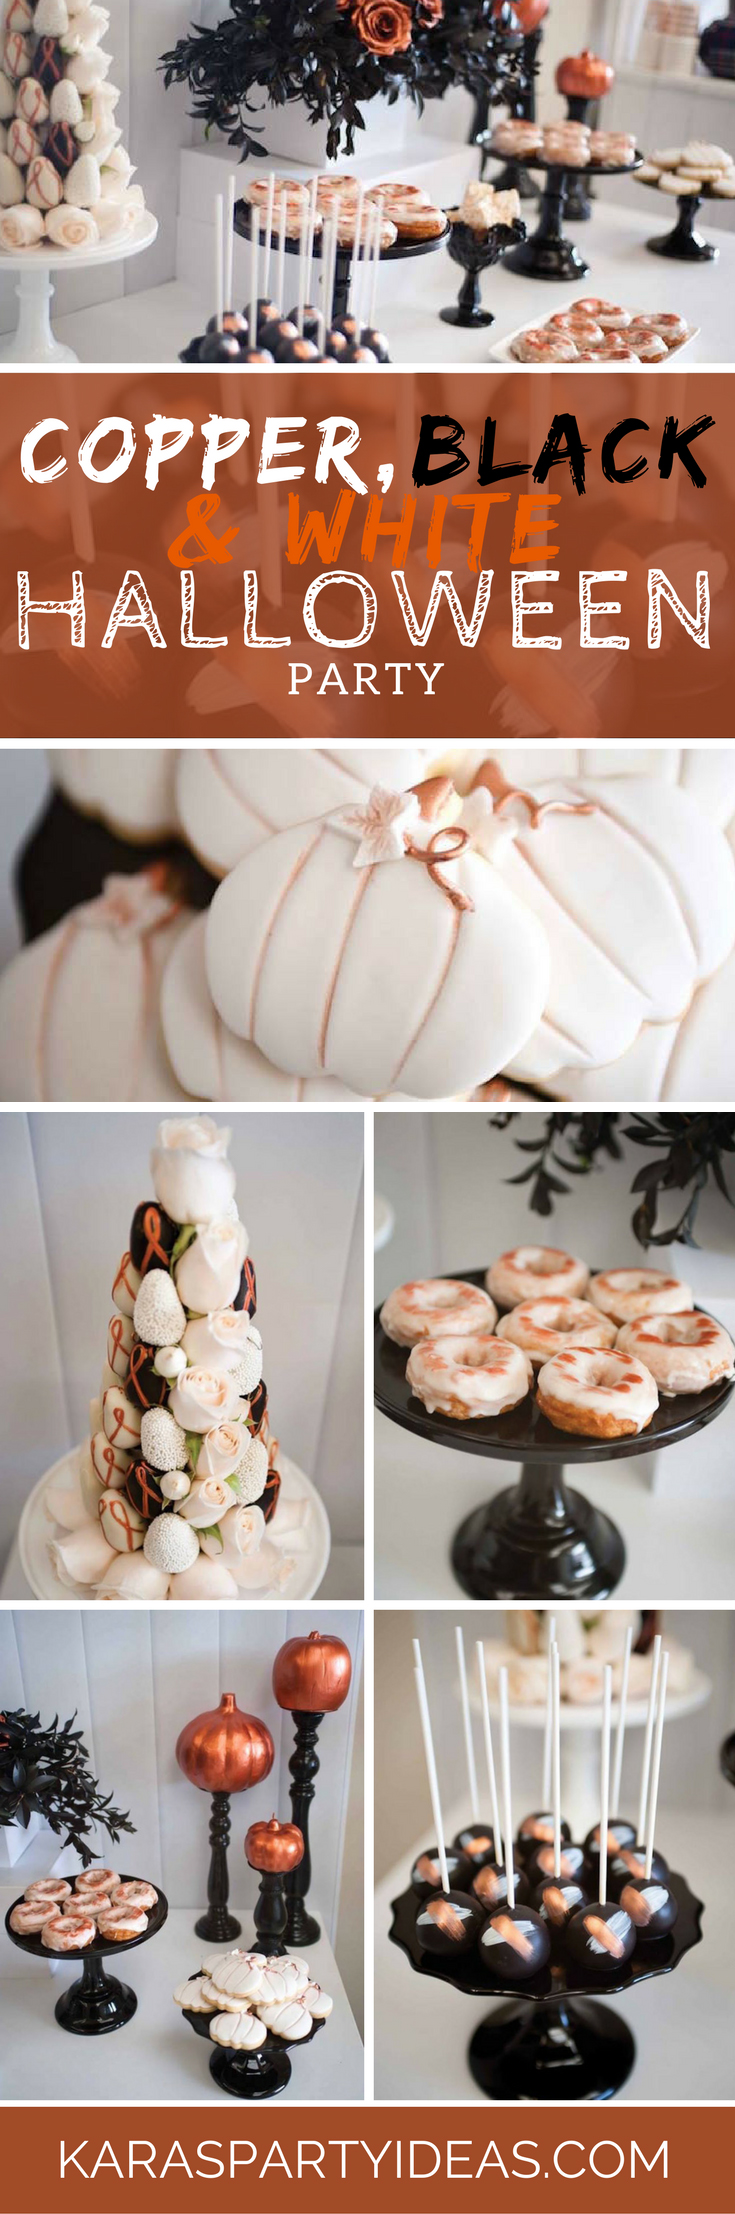 Copper Black White Halloween Party via Kara's Party Ideas - KarasPartyIdeas.com